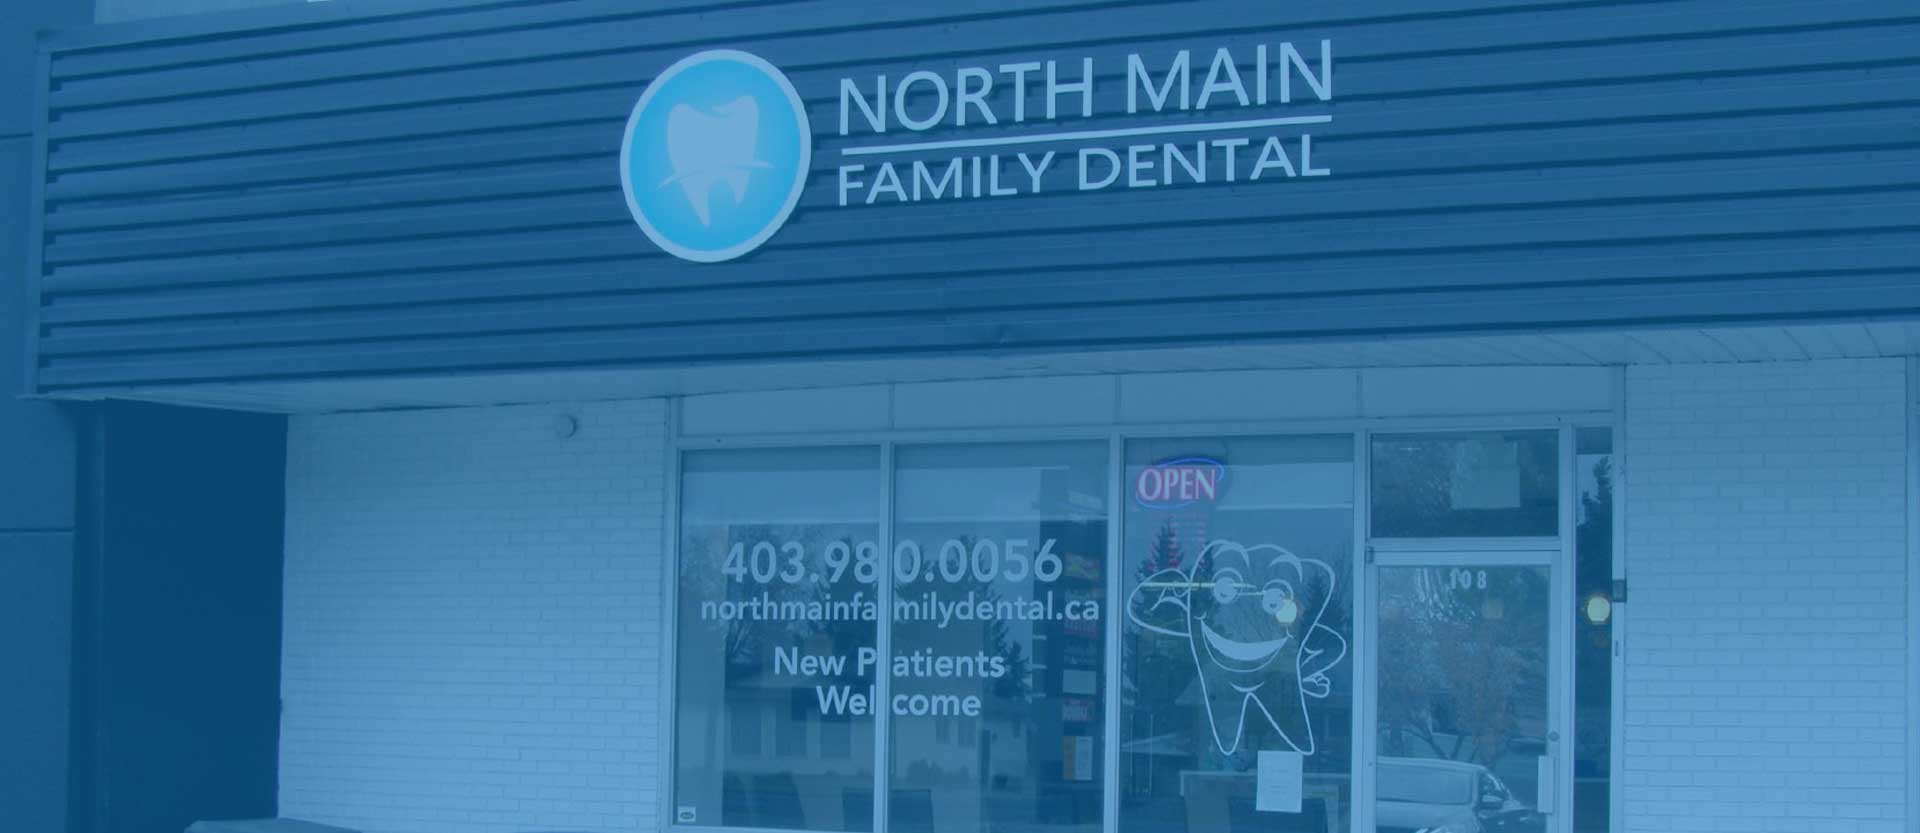 Clinic Entrance   North Main Family Dental   Family and General Dentist   Airdrie